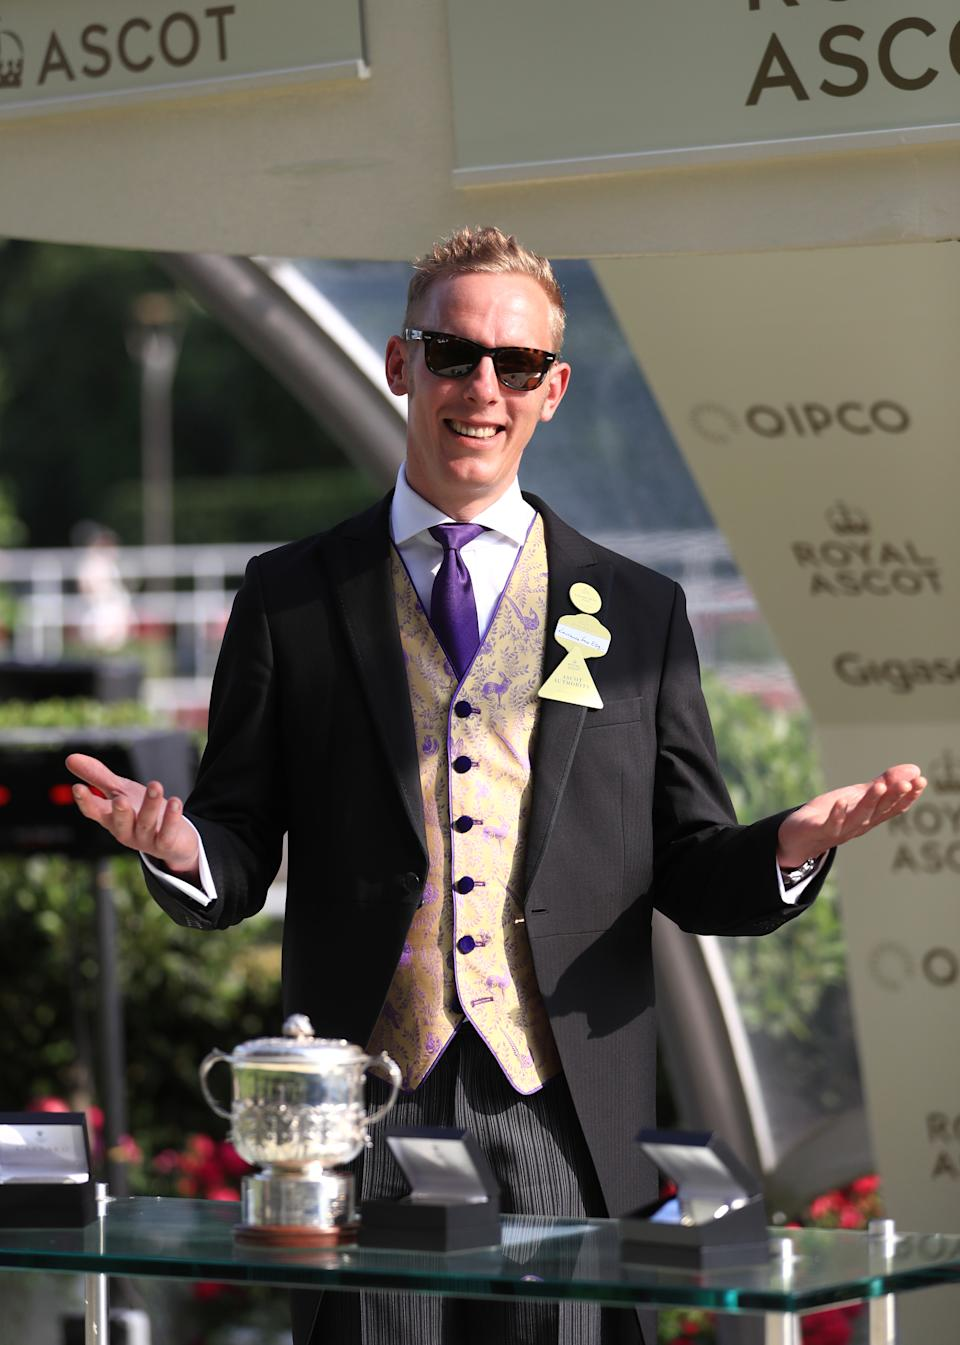 Laurence Fox during the presentation for the Windsor Castle Stakes during day one of Royal Ascot at Ascot Racecourse.